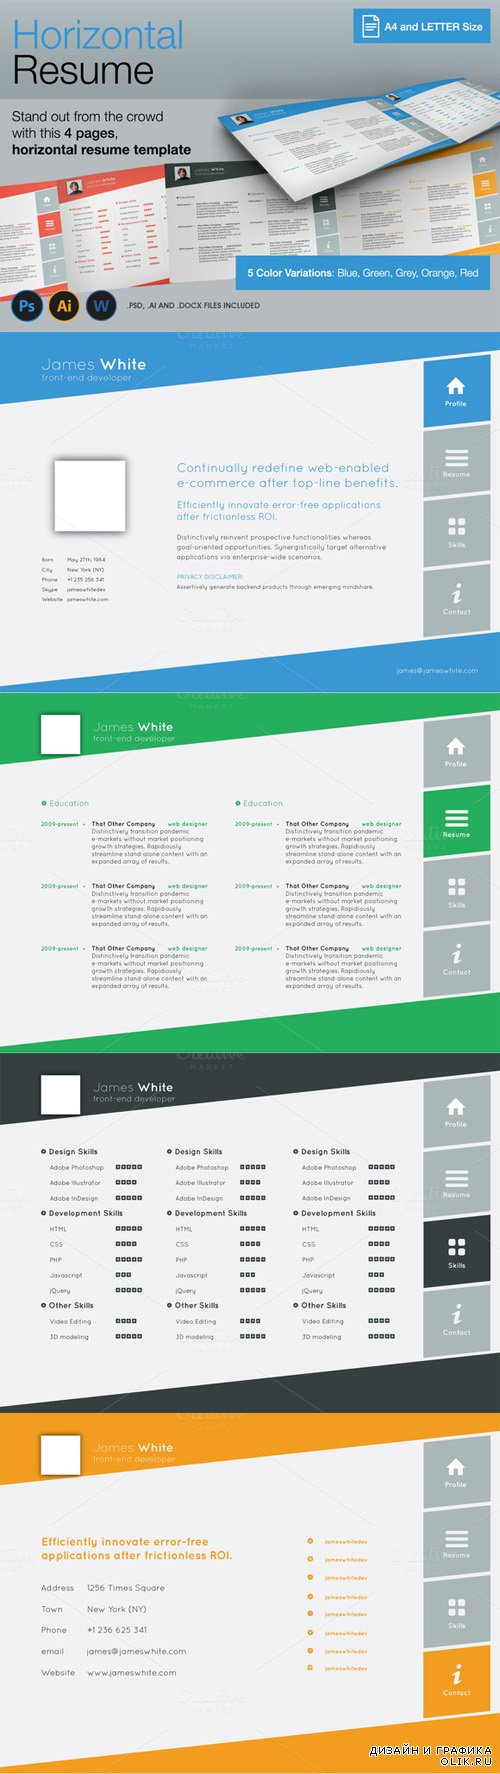 CM - Horizontal, 4 Pages Resume 133358